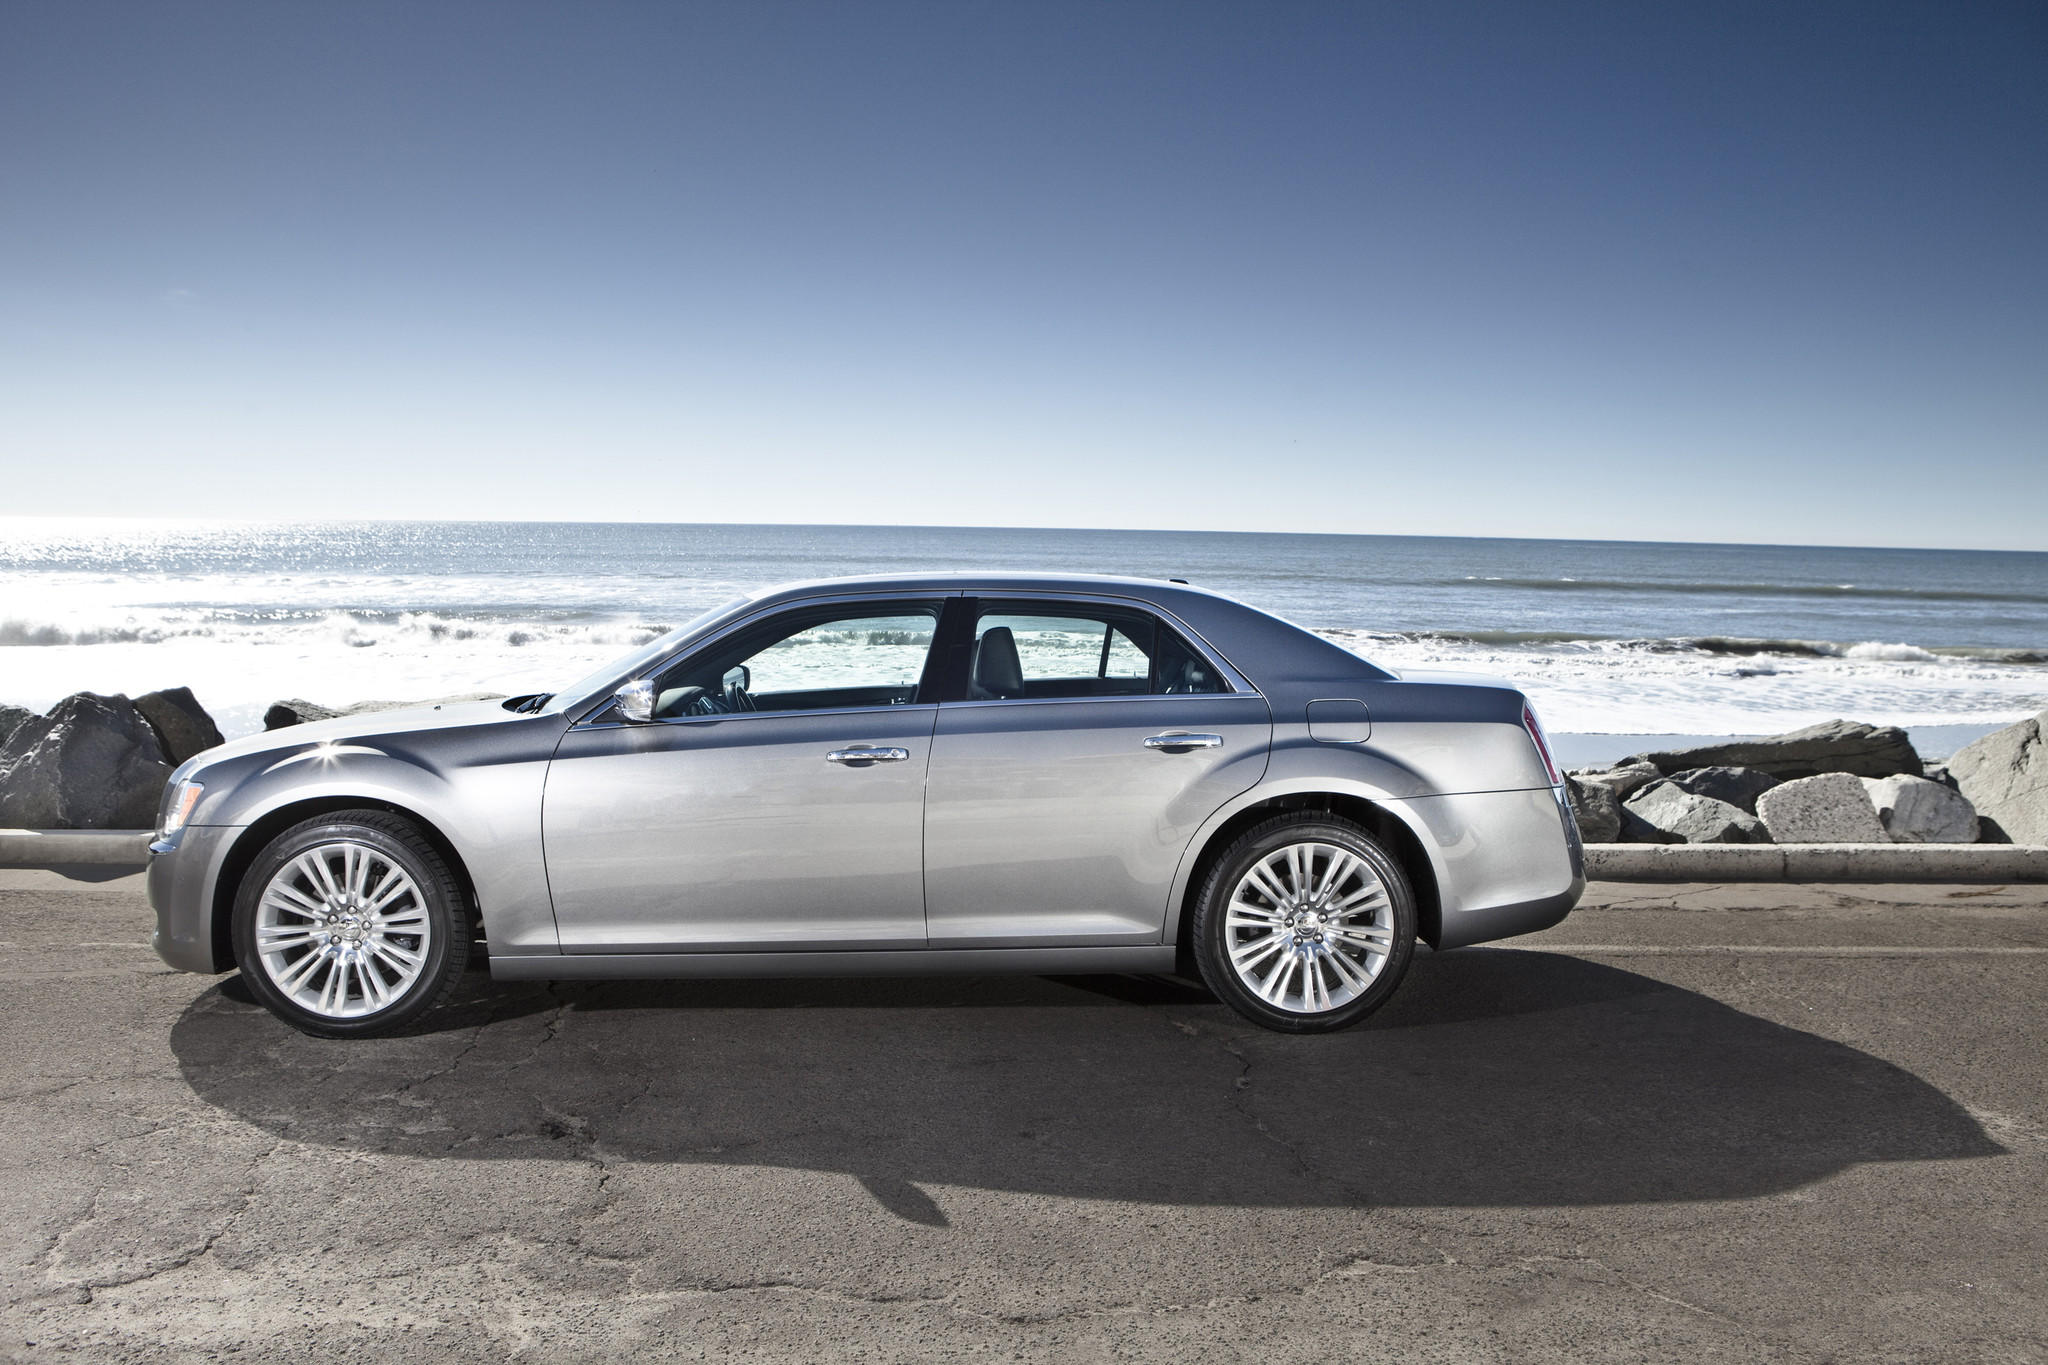 The Chrysler 300 is a top pick in the AAA Senior Driving database, which measures senior-friendly features like easy egress, wide visibility and other features, according to Forbes.com.